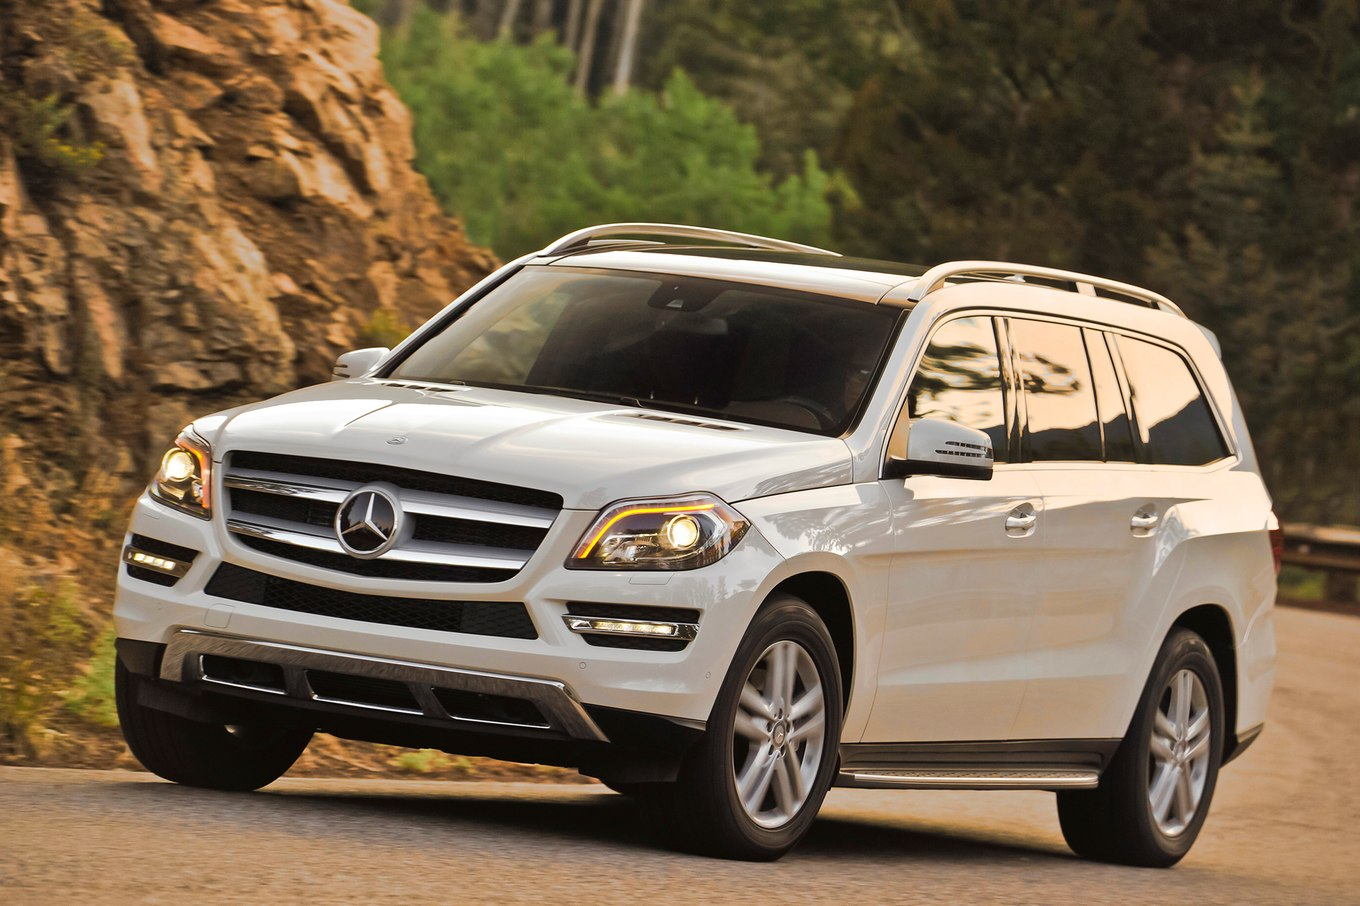 Mercedes benz gl photo - 7